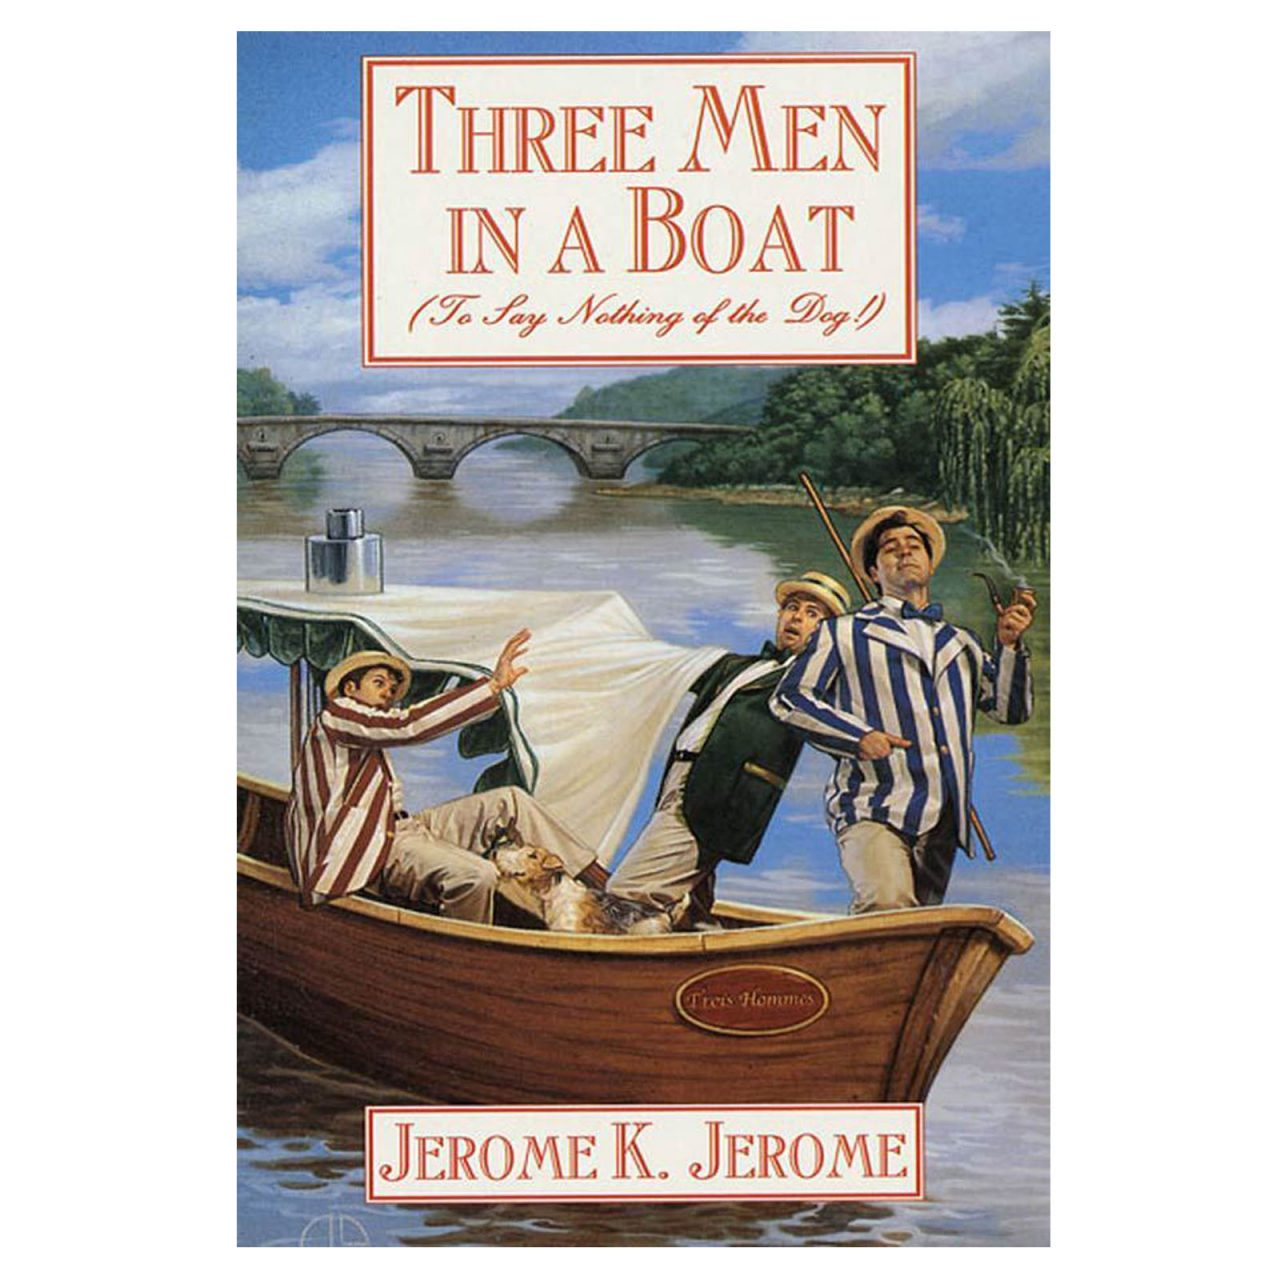 A Reader's Guide to Jerome K. Jerome & 'Three Men in a Boat'